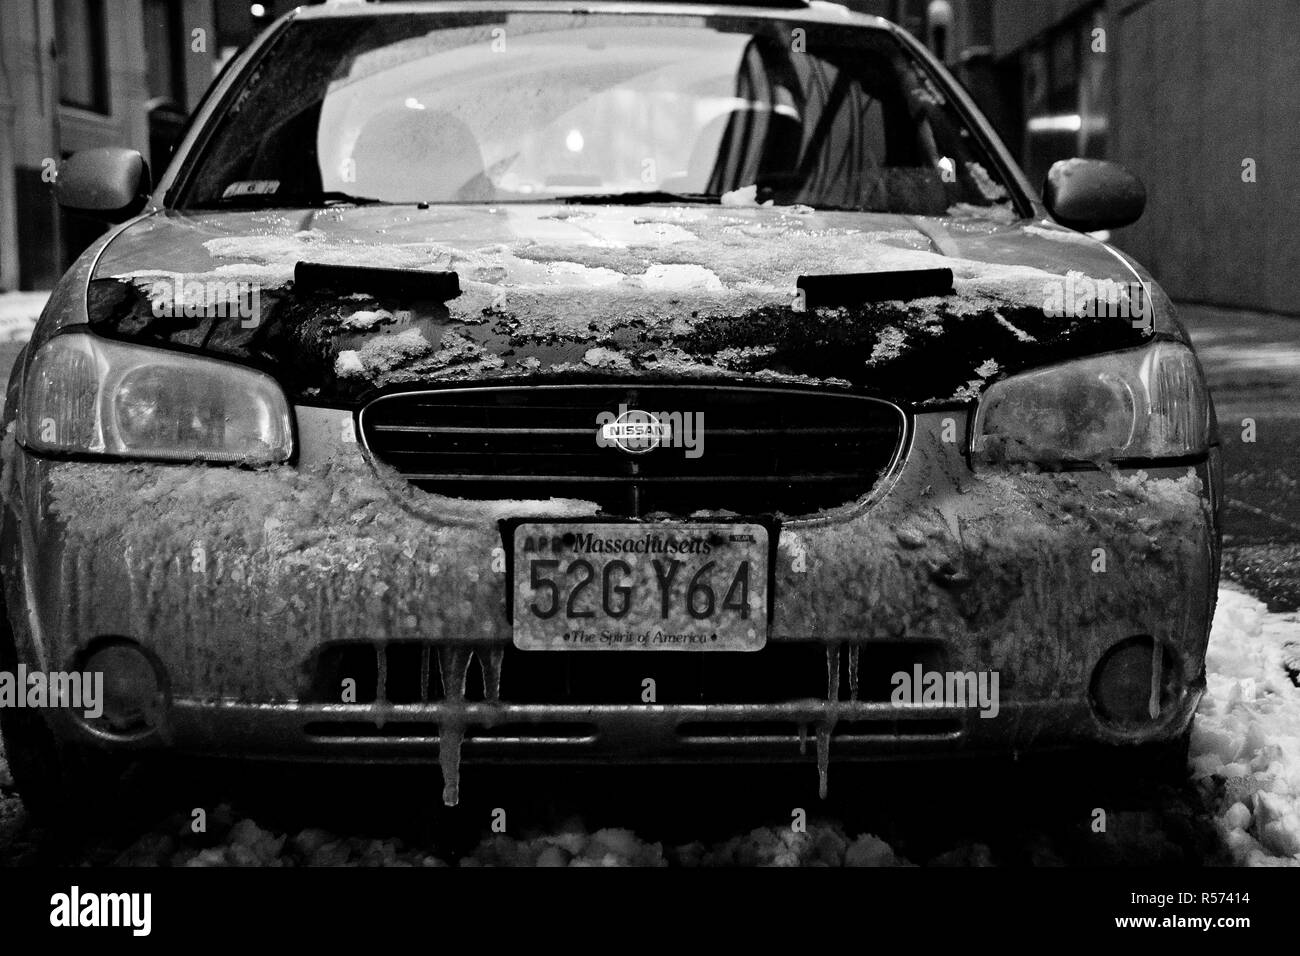 Boston, Massachusett - January 16, 2012: Car with ice and snow parked on the street. - Stock Image